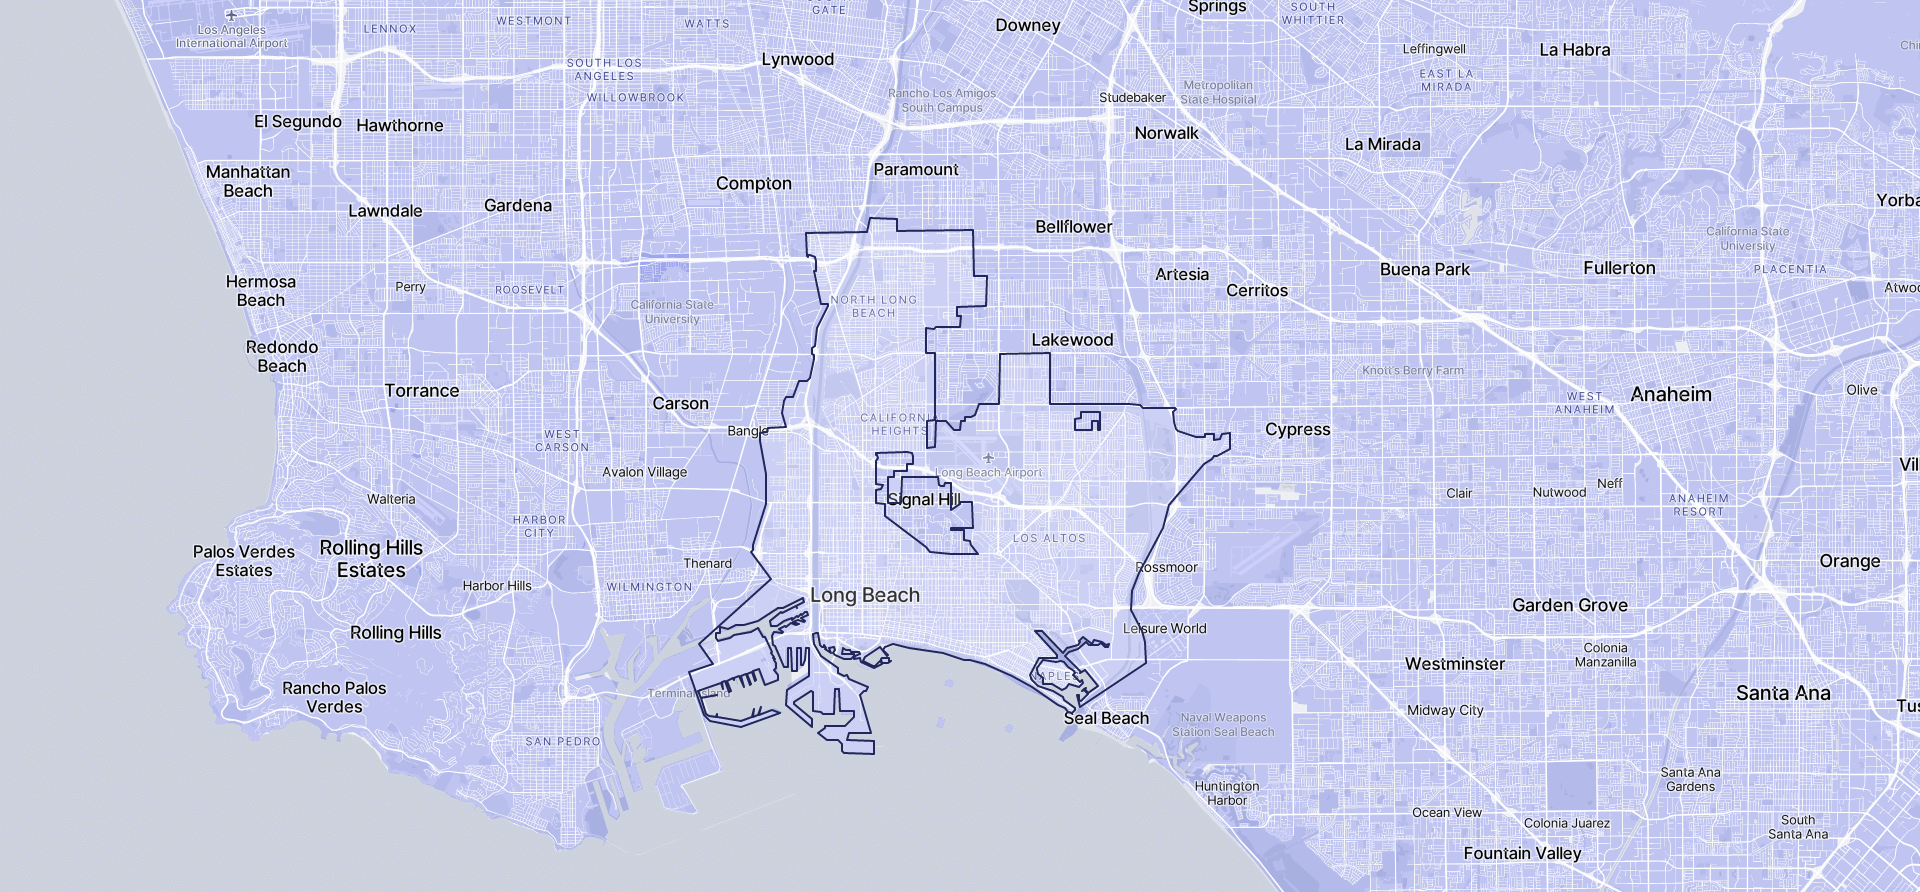 Image of Long Beach boundaries on a map.